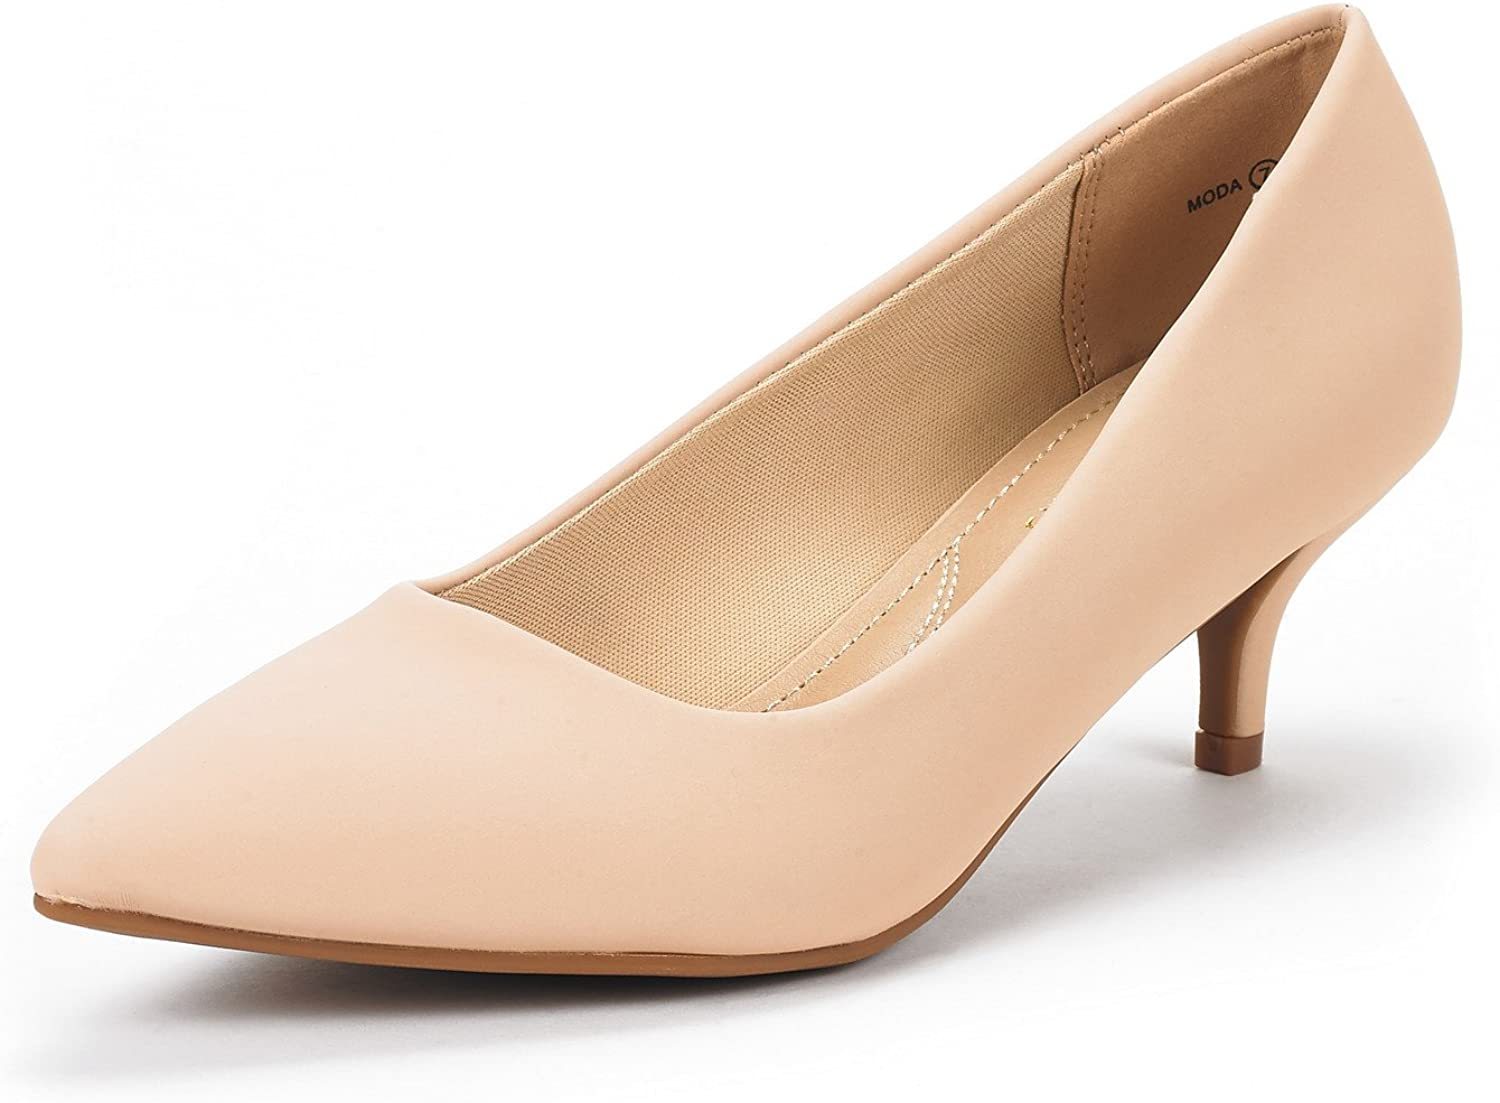 DREAM PAIRS Women's Moda Low Heel D'Orsay Pointed Toe Pump Shoes